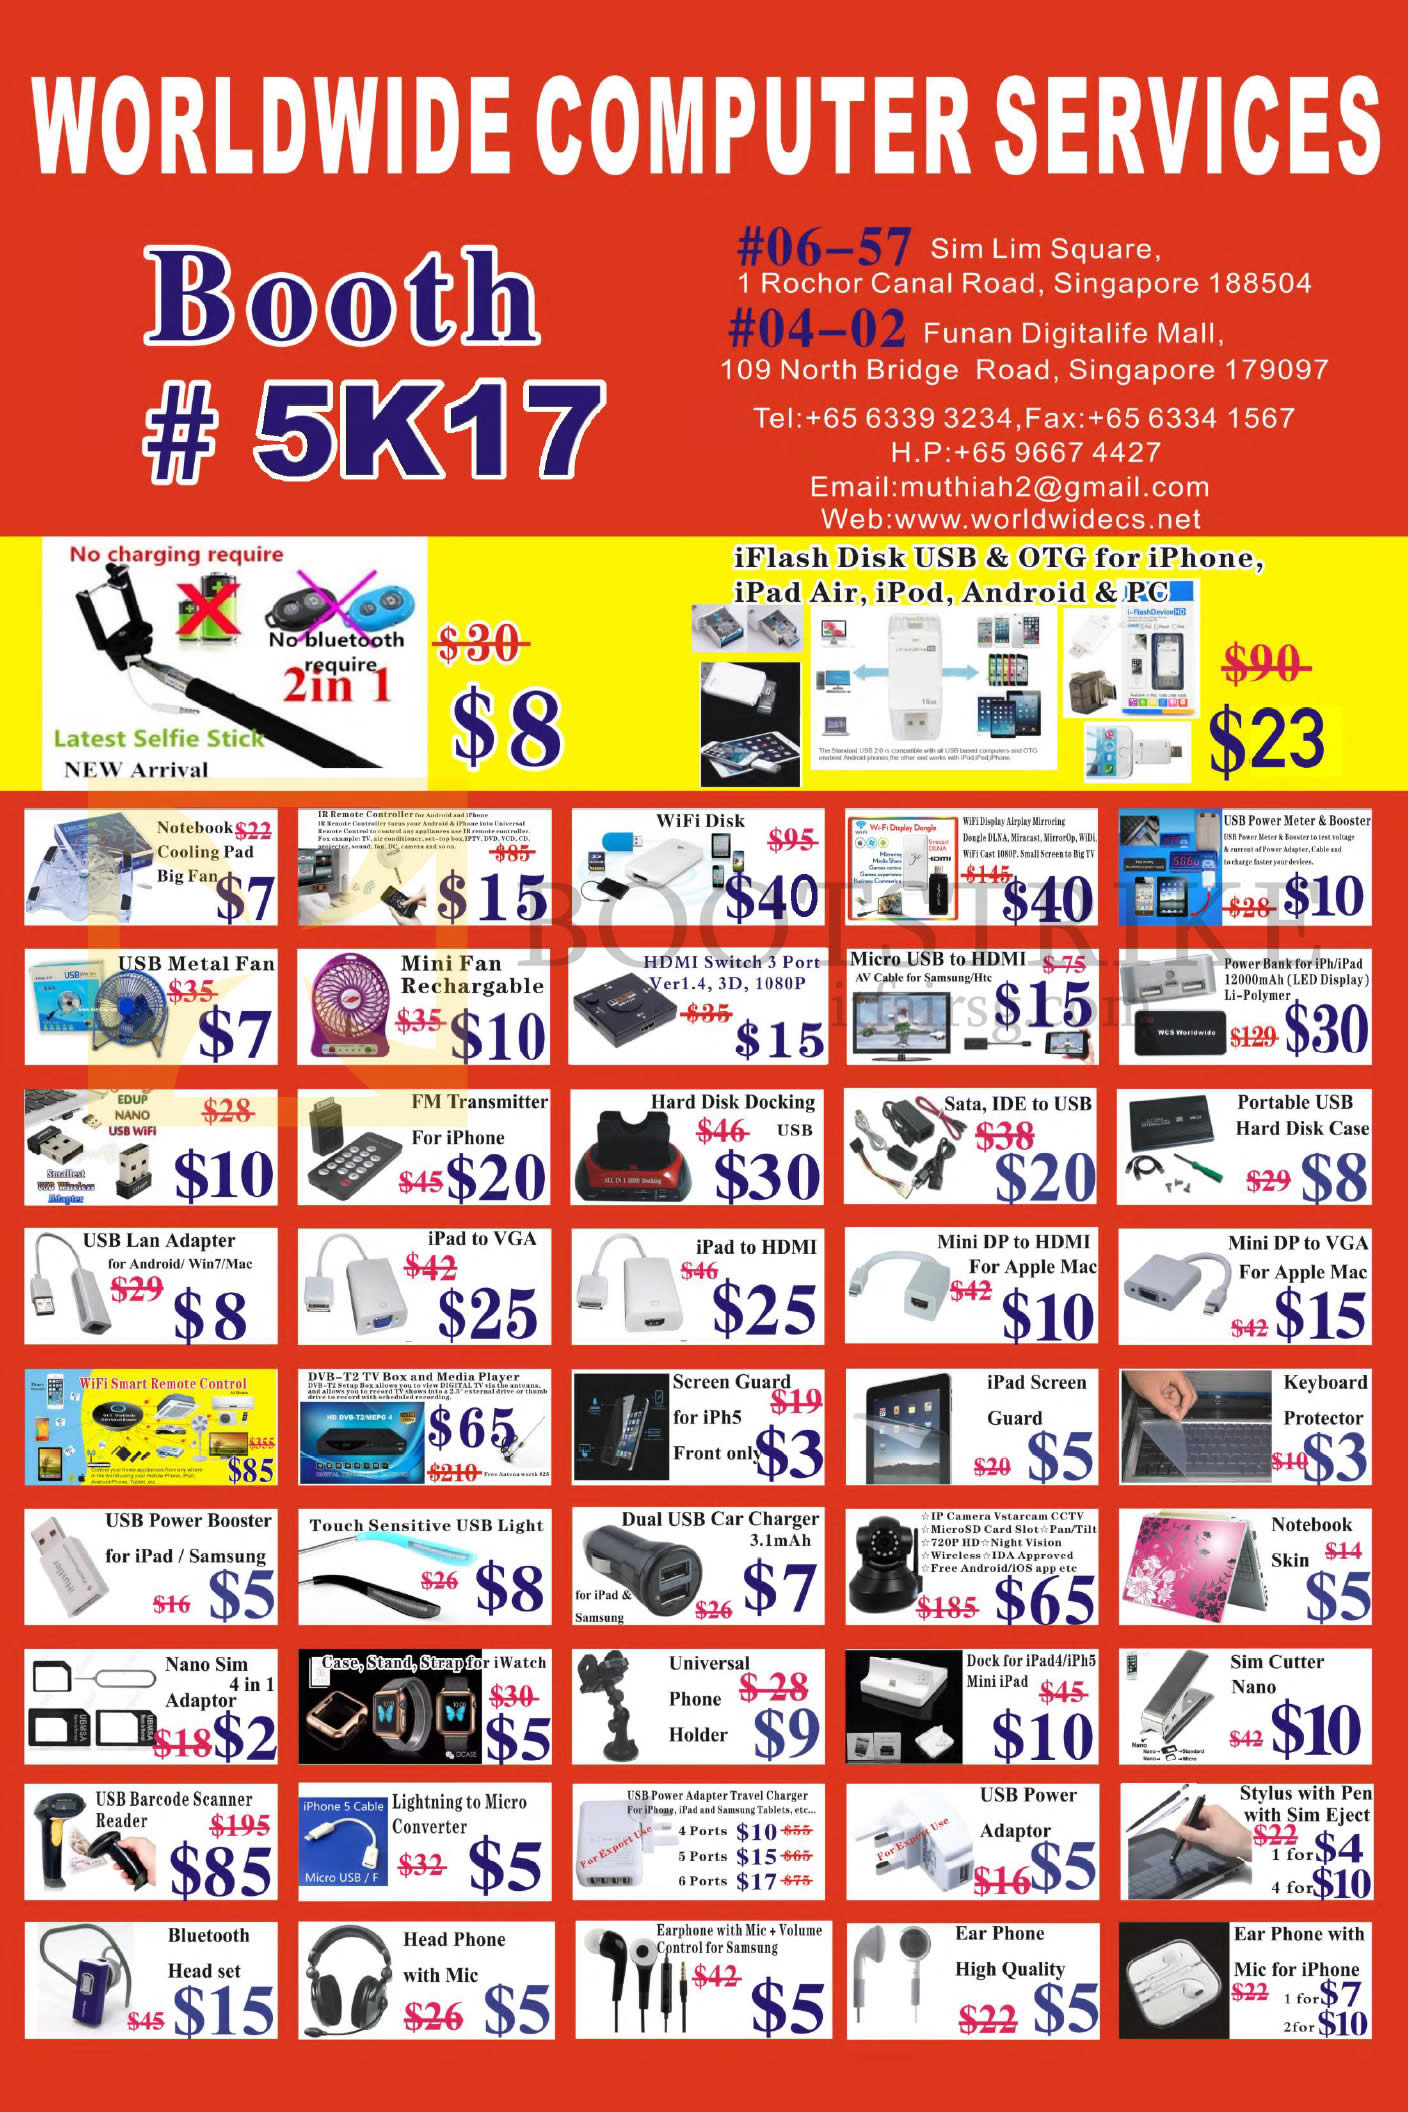 SITEX 2015 price list image brochure of Worldwide Computer Services Featured Offers, Accessories, USB, Cables, Charges, Adapters, Earphones